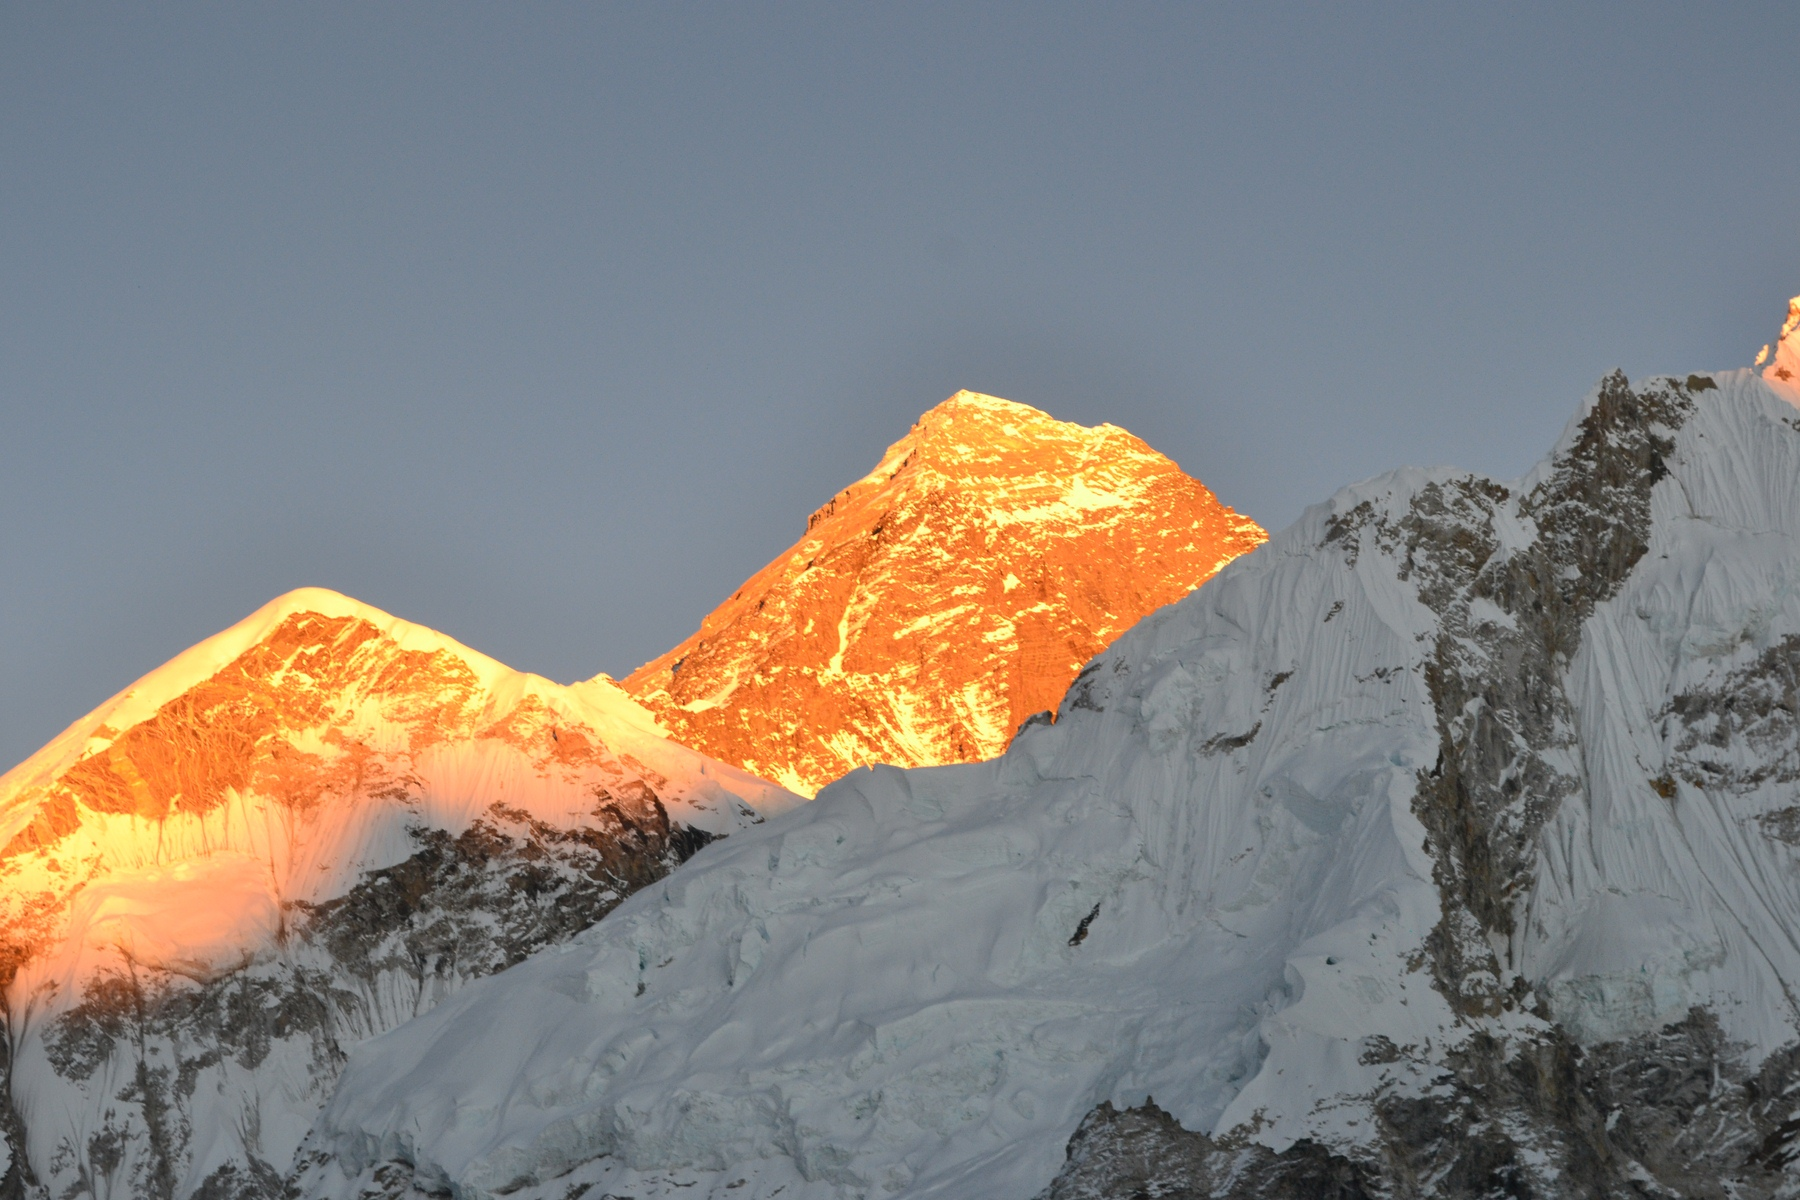 everest-trek-gallerie-2(15)